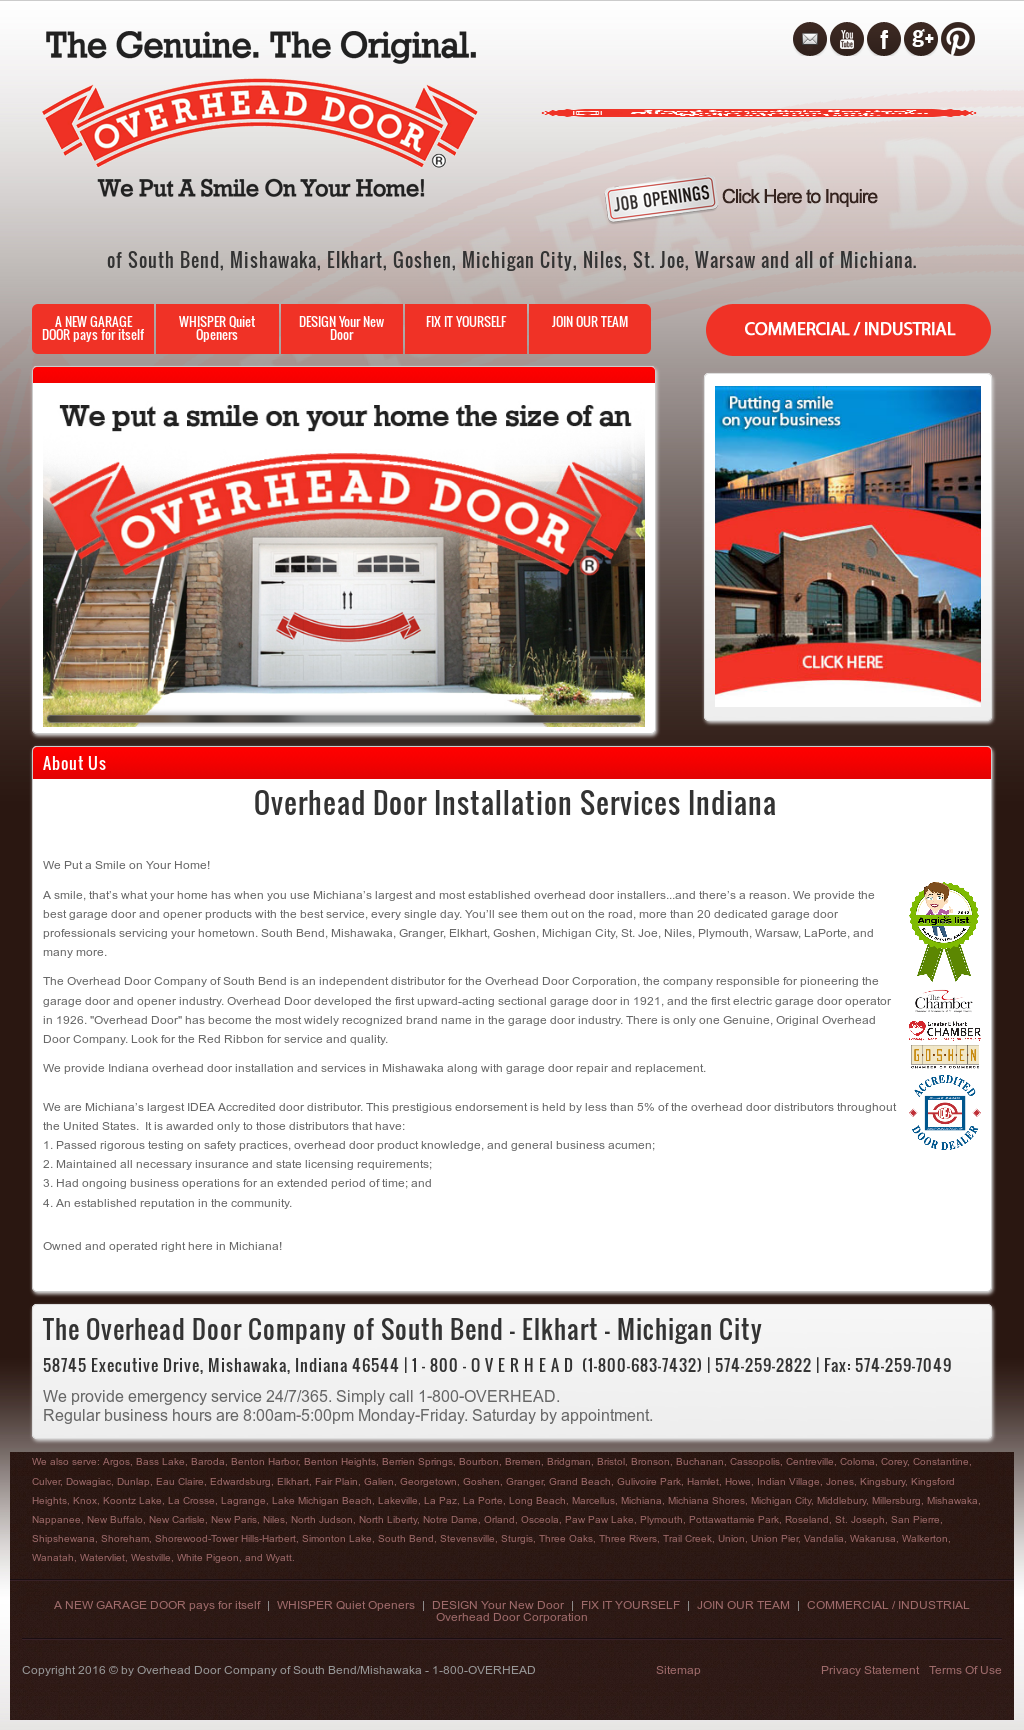 Gentil Overhead Door South Bend Competitors, Revenue And Employees ...